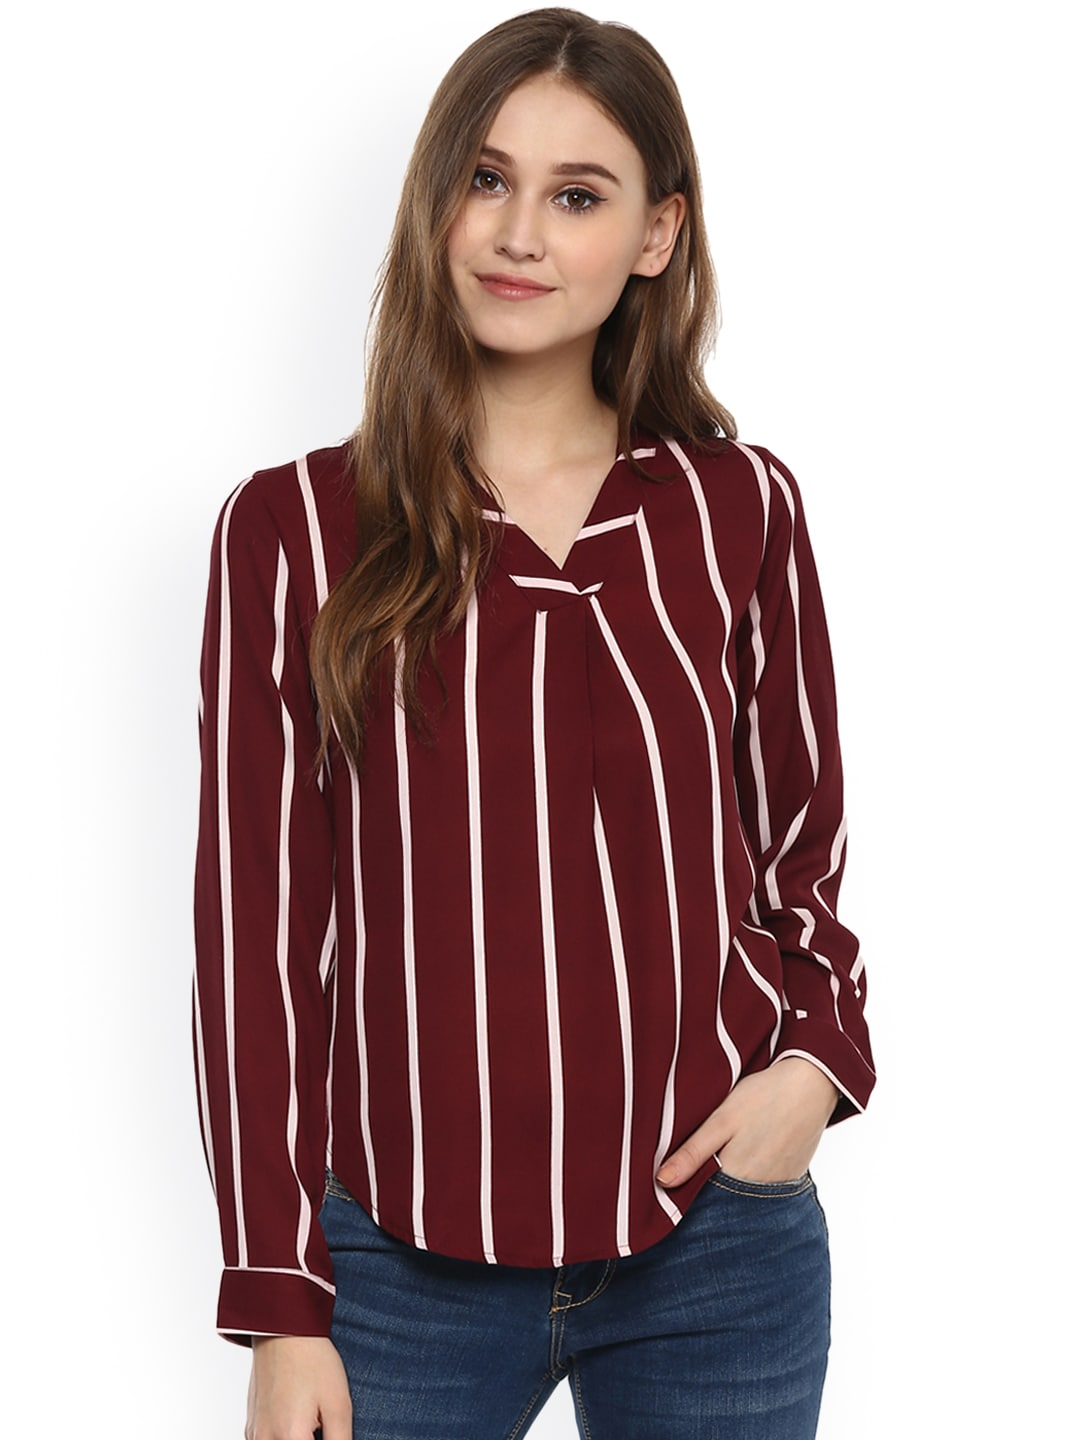 139544d3aac Tops - Buy Designer Tops for Girls   Women Online